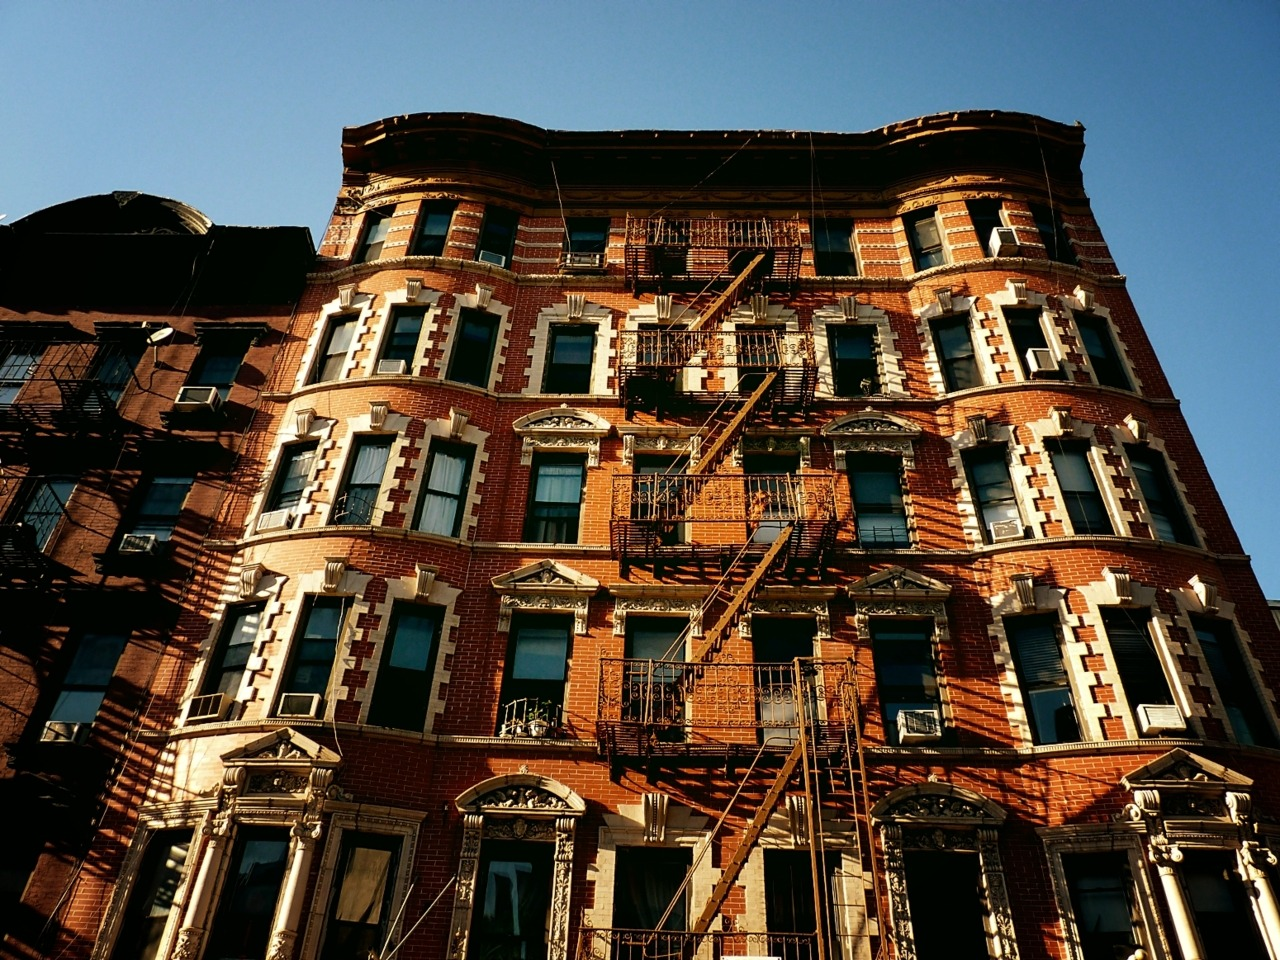 Lower East Side fire escapes and brickwork. New York City.